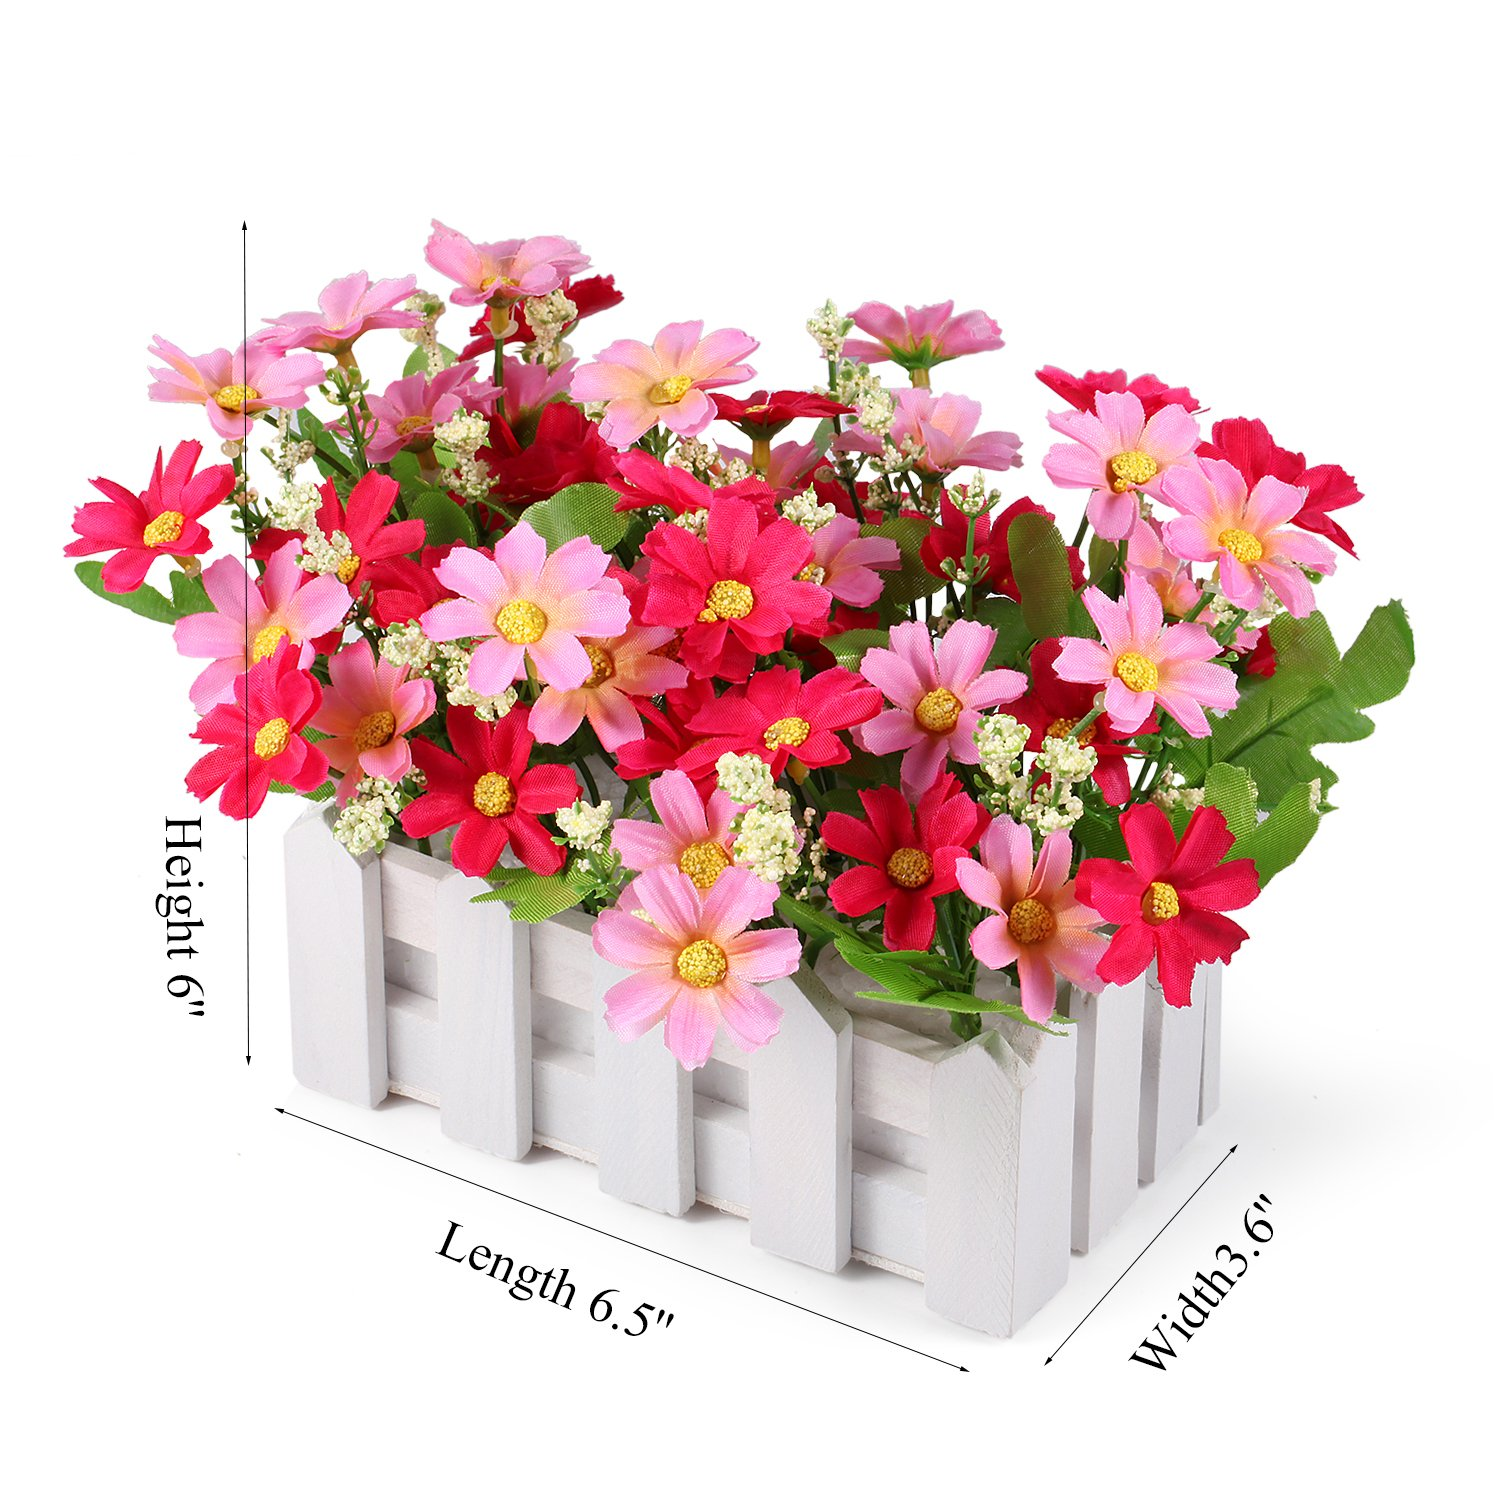 Louis Garden Artificial Flowers Fake Daisy in Picket Fence Pot Pack - Mini Potted Plant (Daisy-Pink) by Louis Garden (Image #4)